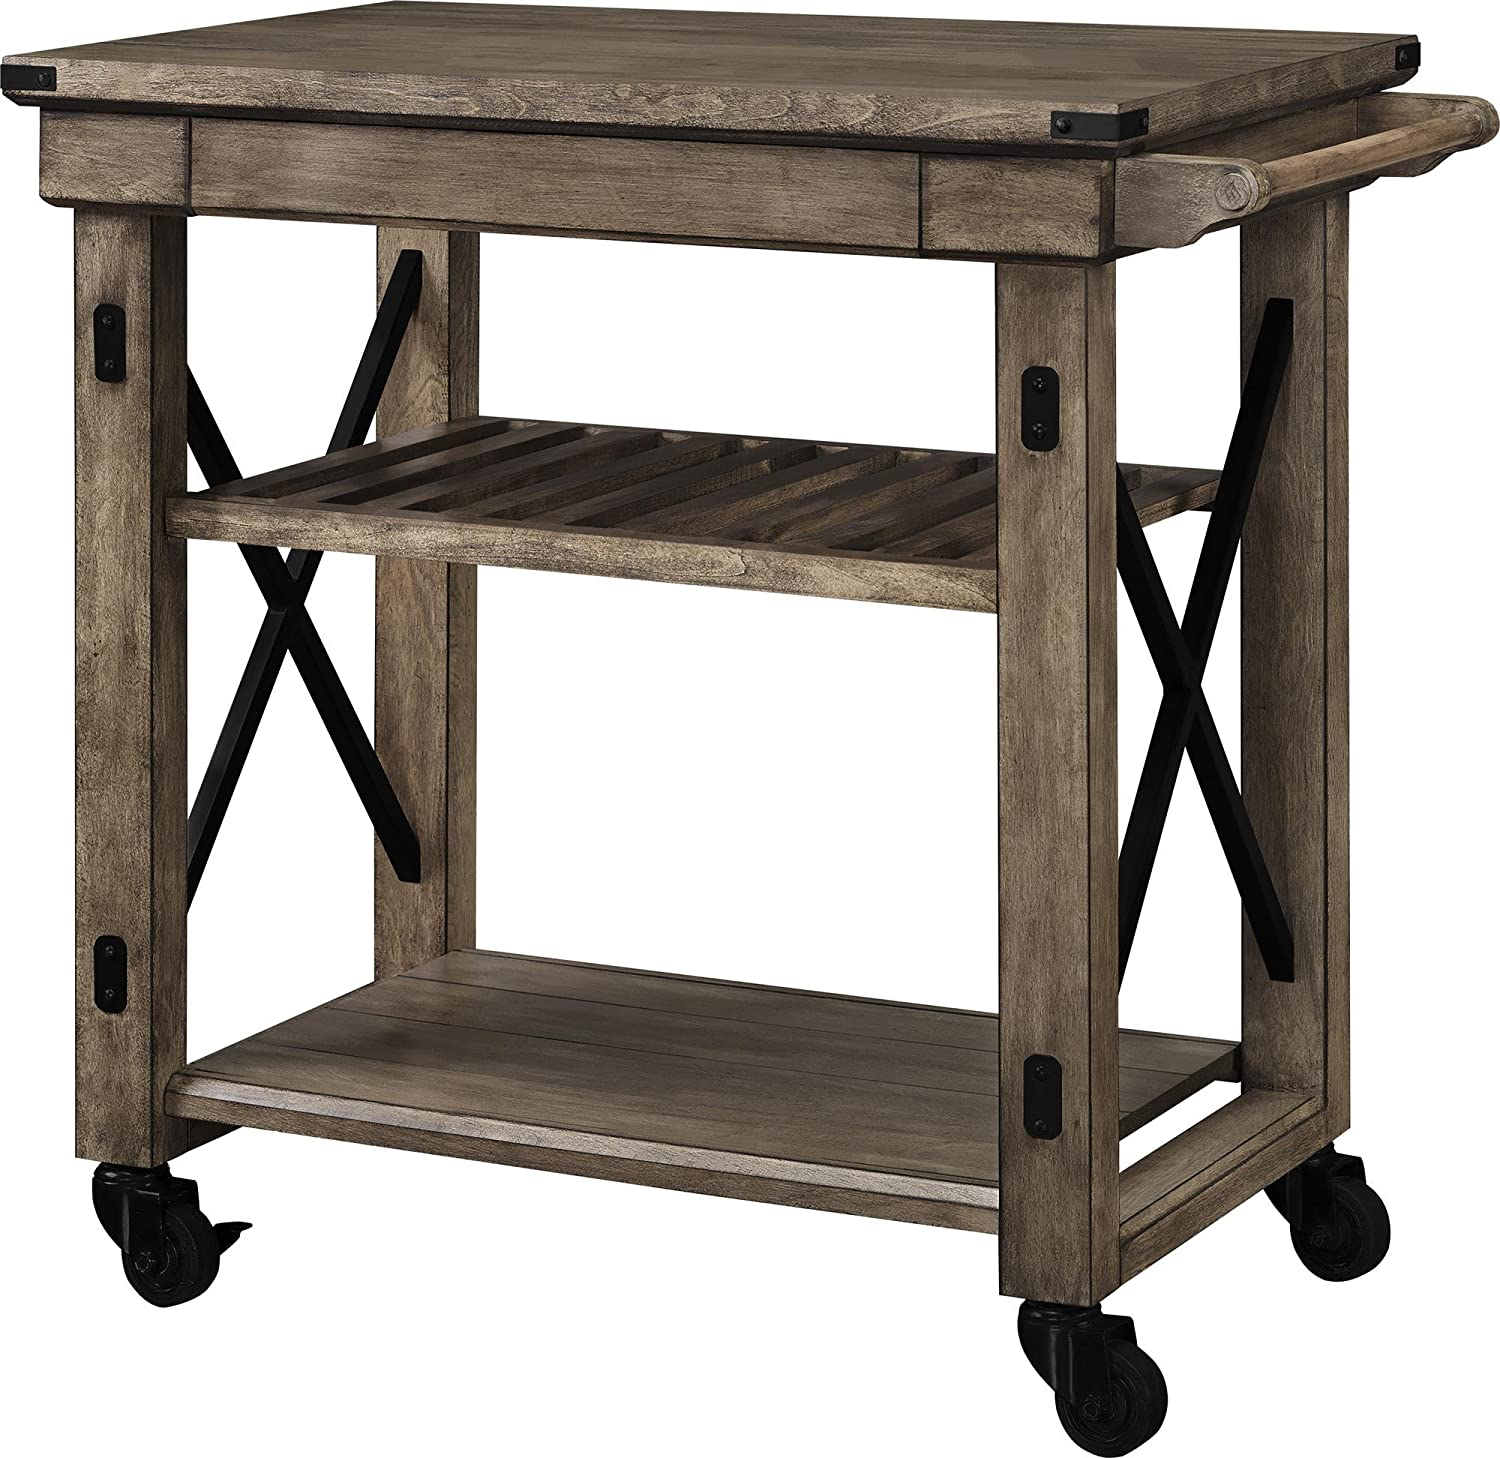 Amazon com ameriwood home wildwood wood veneer multi purpose rolling cart rustic gray kitchen dining